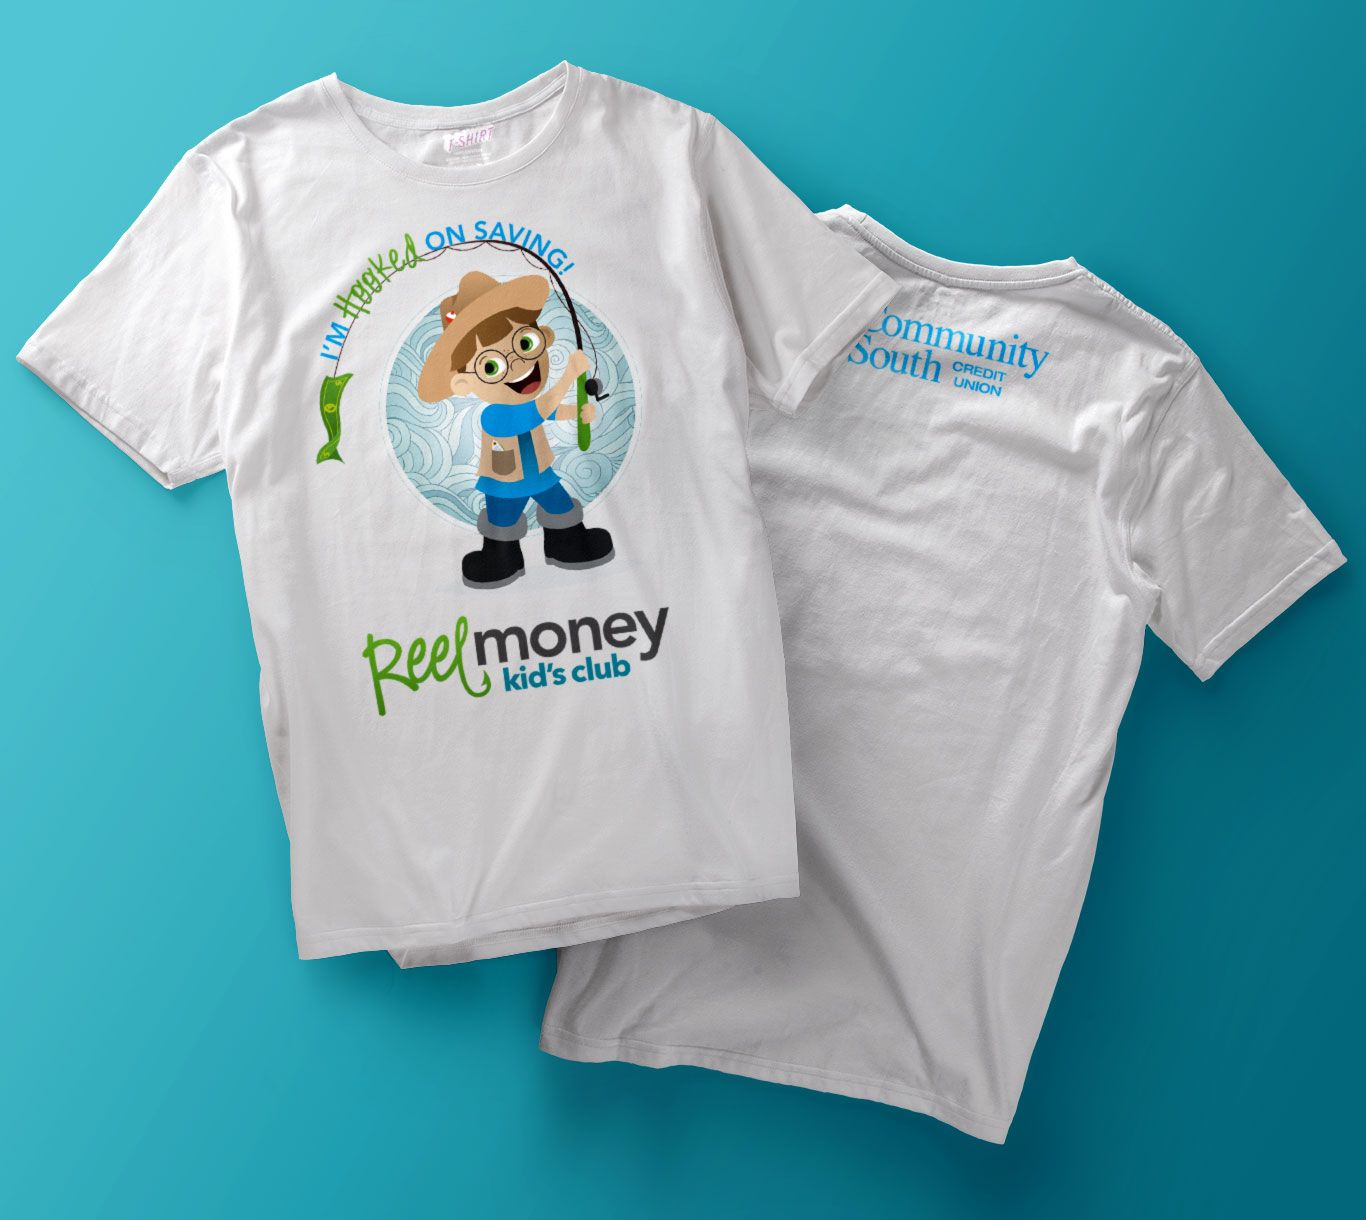 Front and back of white t-shirts with illustration of Gil, the Community South Reel Money Kids Club mascot.